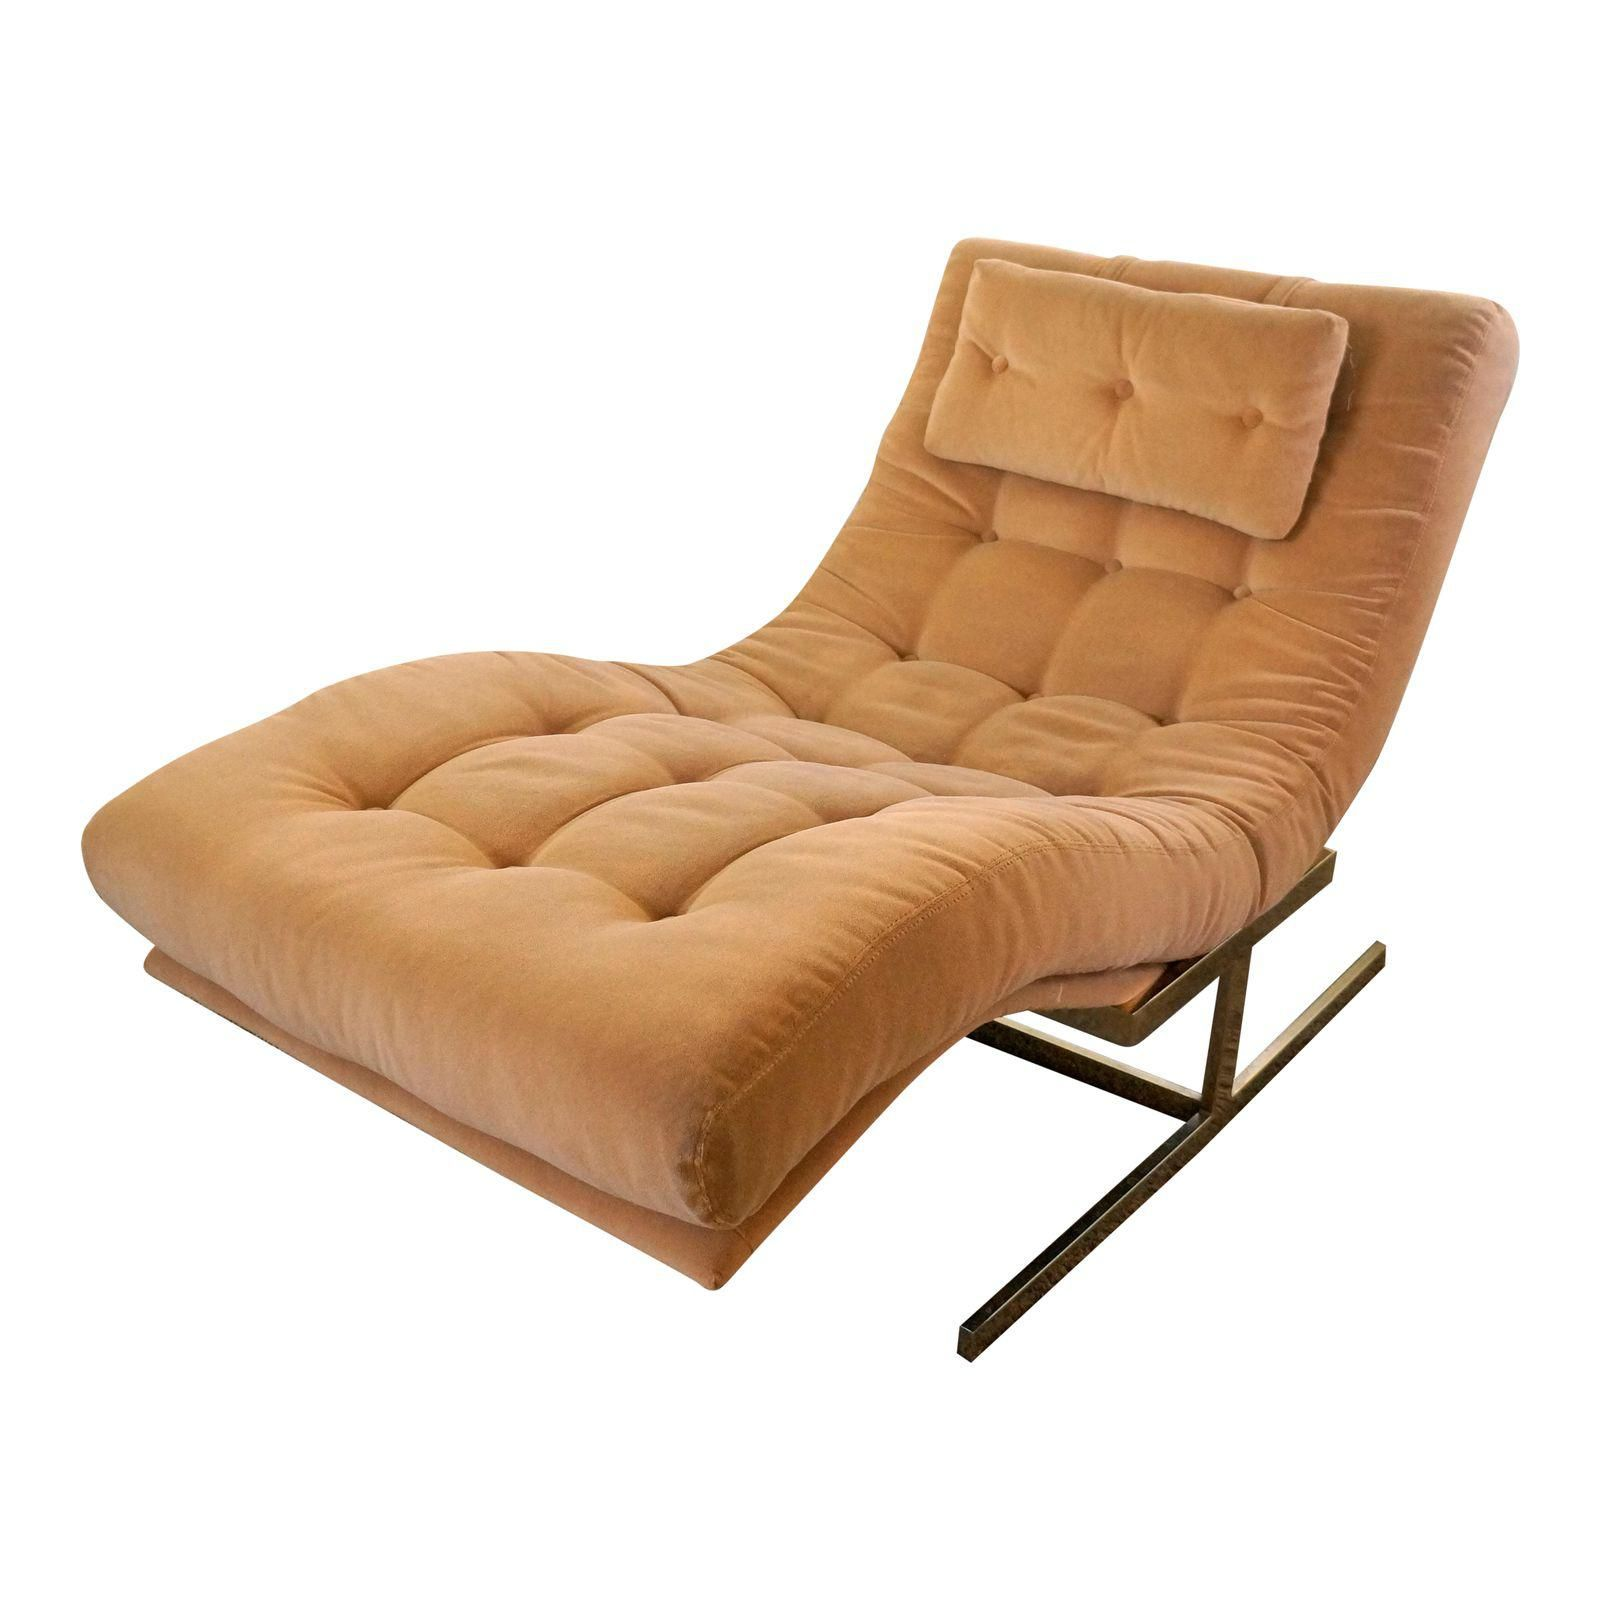 Mid Century Modern Milo Baughman Wave Lounge Chair Image 1 Of 5